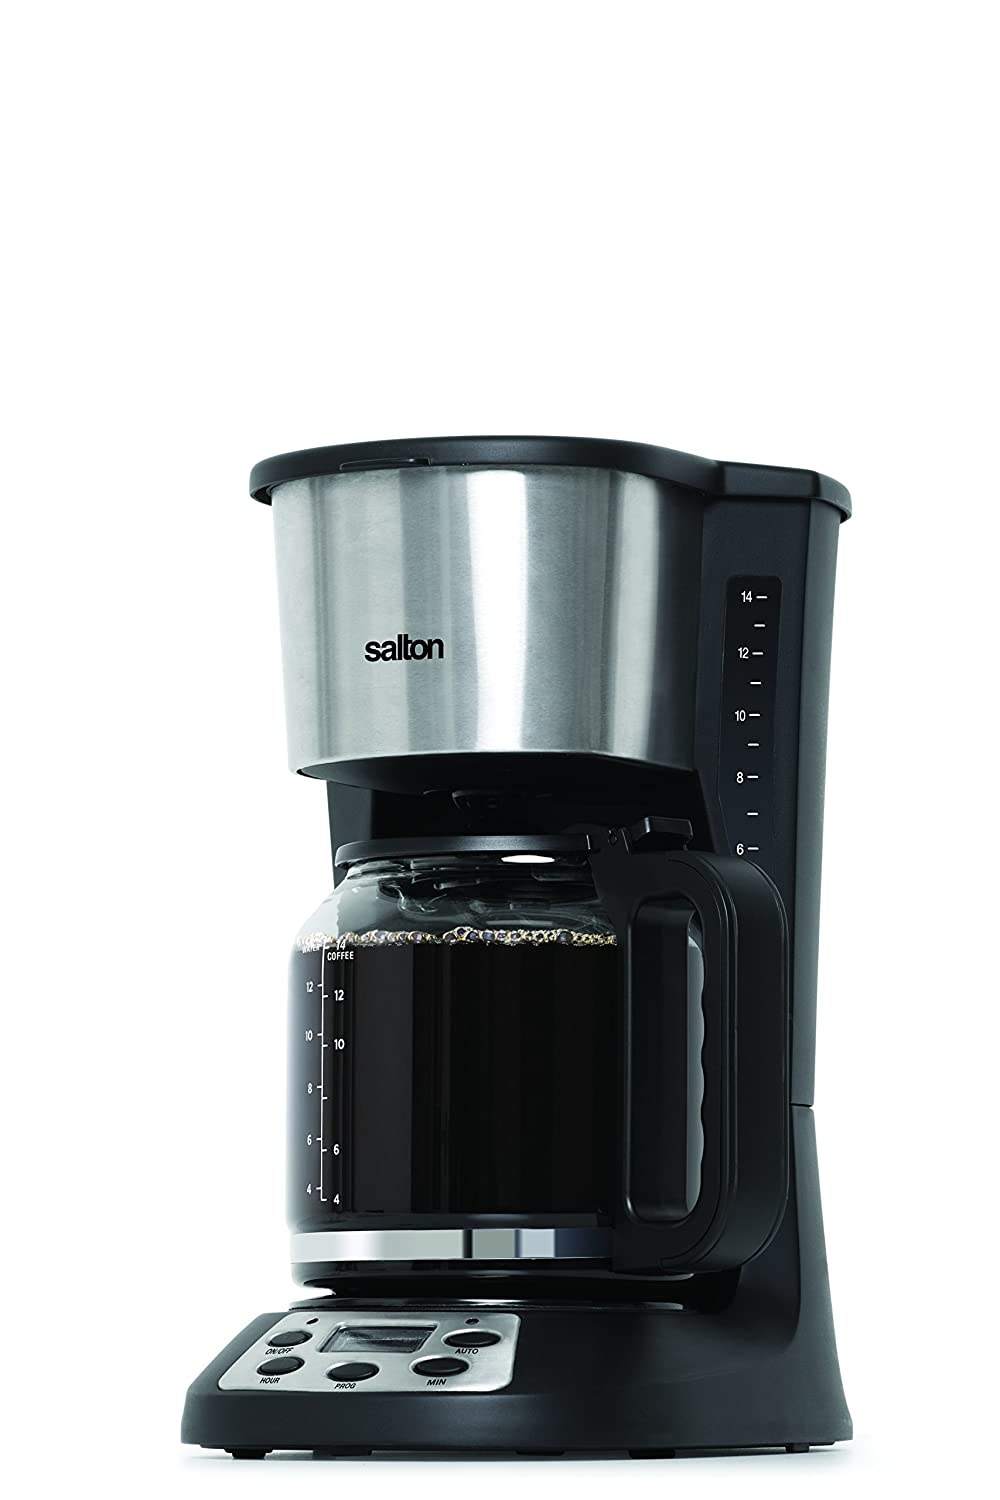 Salton FC1667 14 Cup Coffee Maker, Black